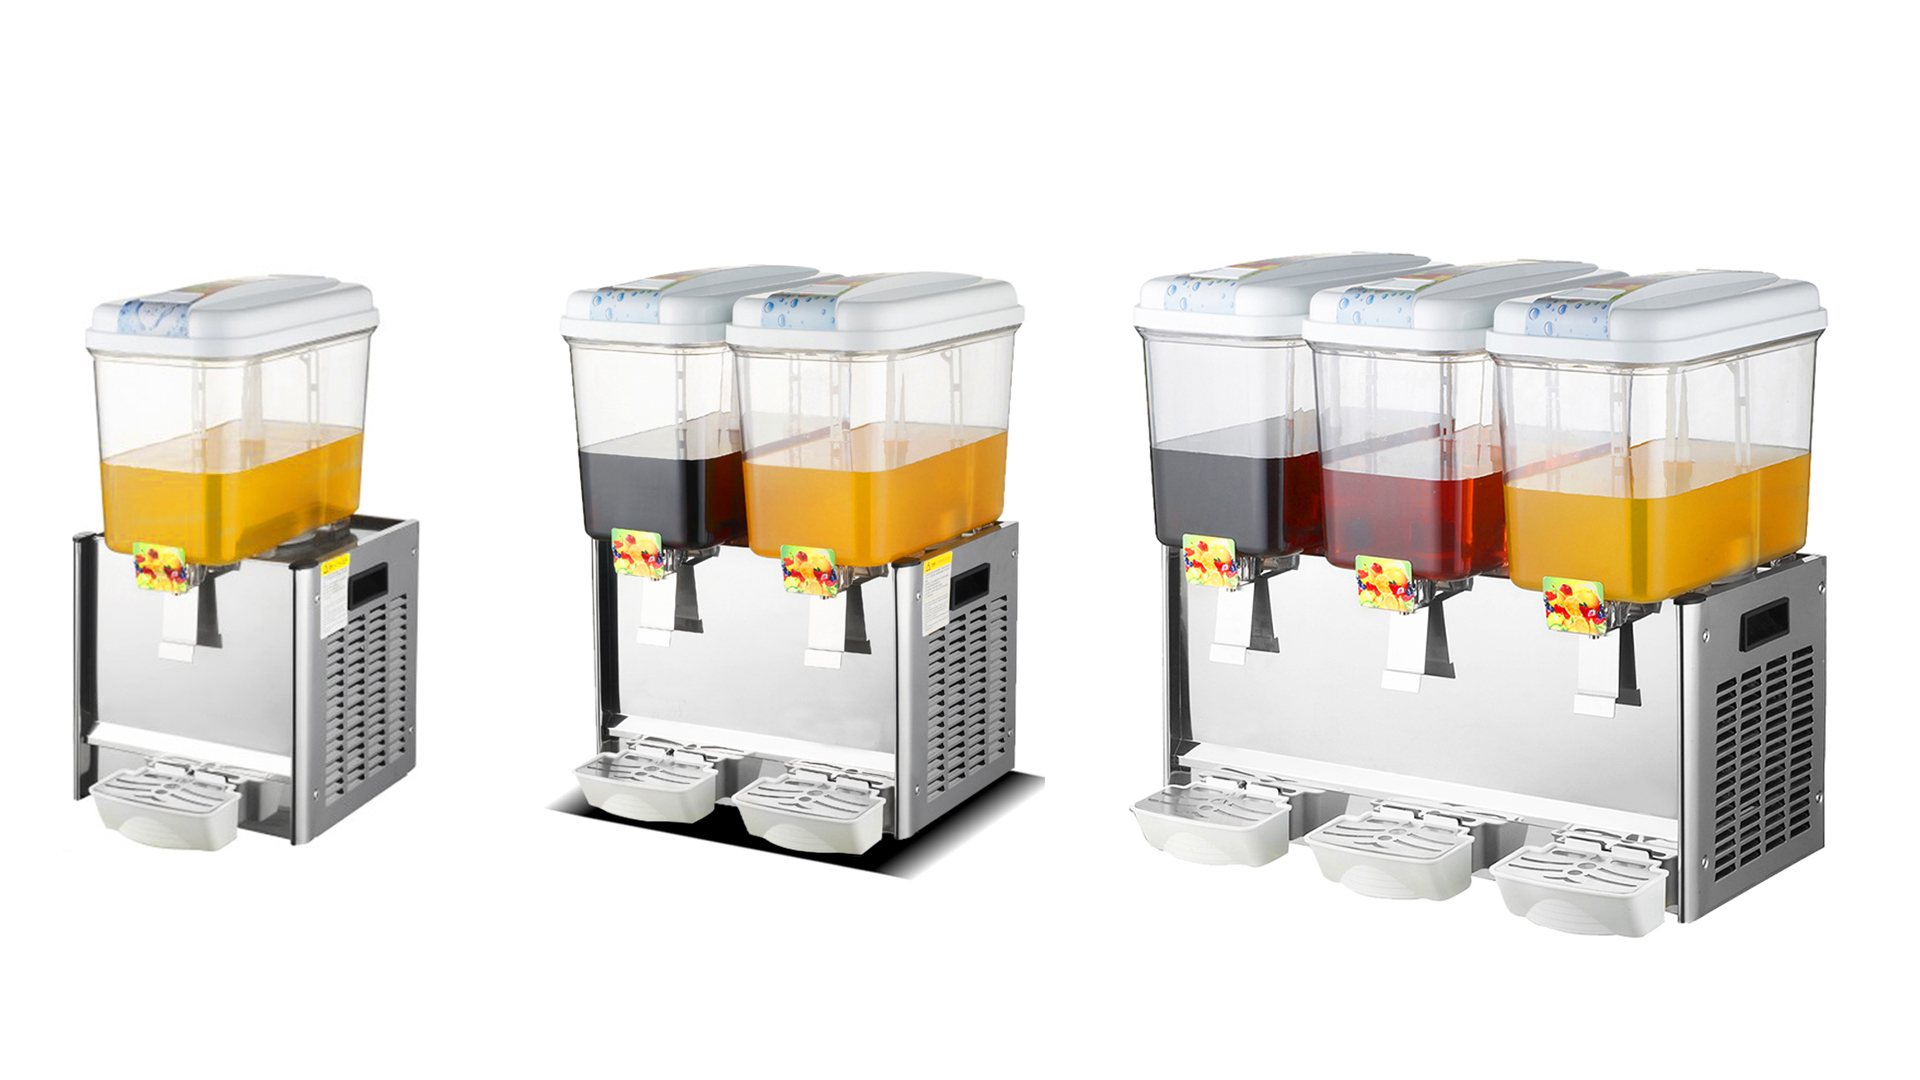 Automatic Commercial Cold Orange Juice Refrigerator Cafeterias 18 liters Cold Fruit Juice Dispenser ice masher | factory